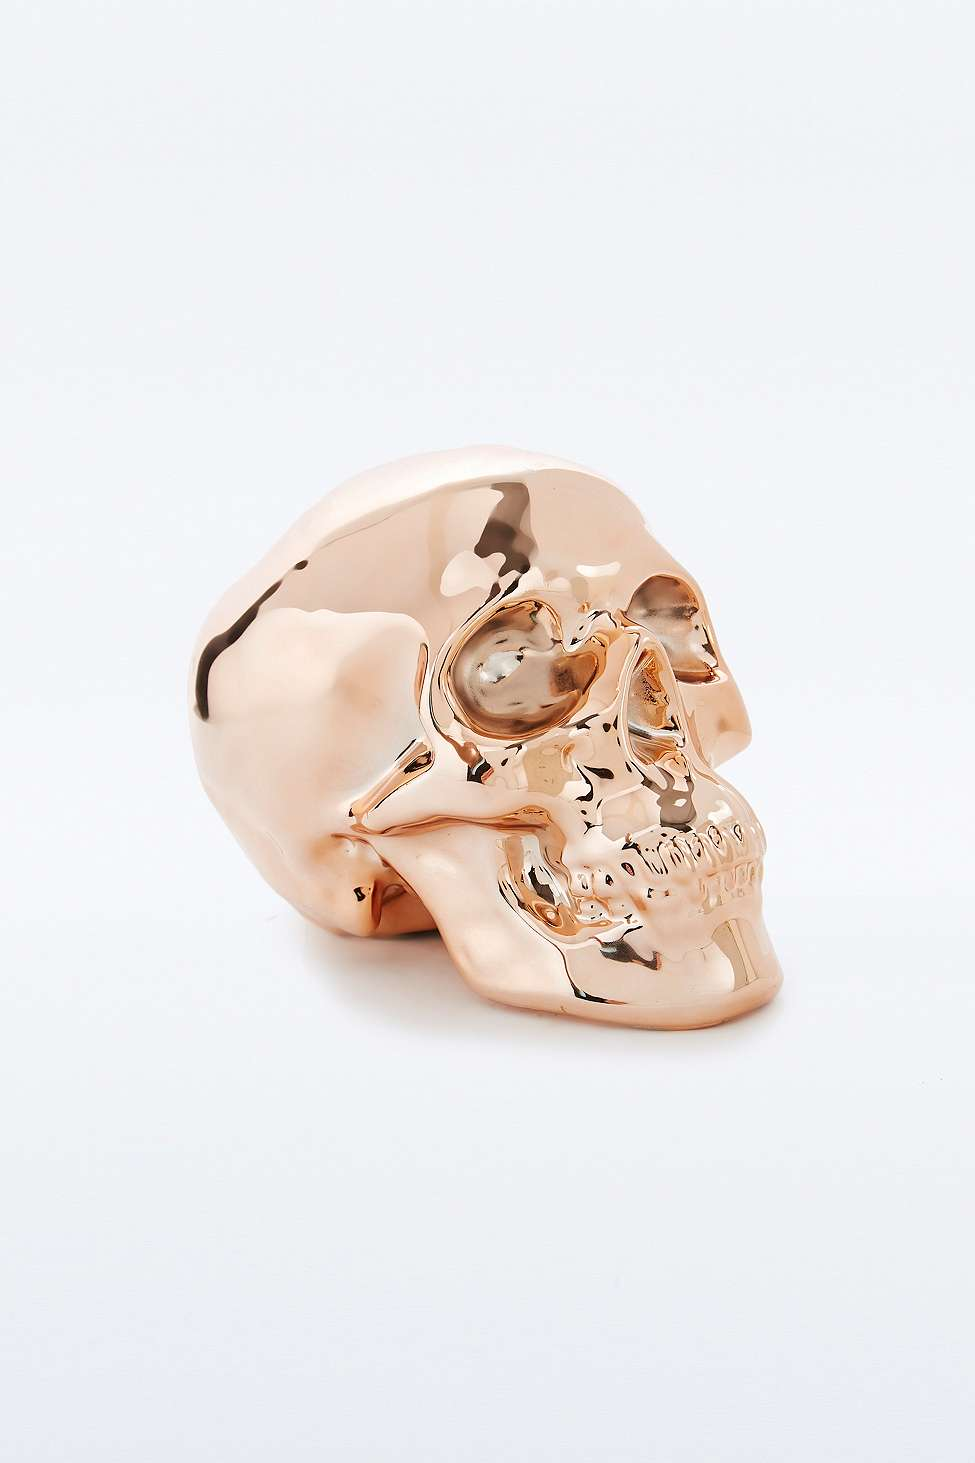 Copper Skull MoneyBox